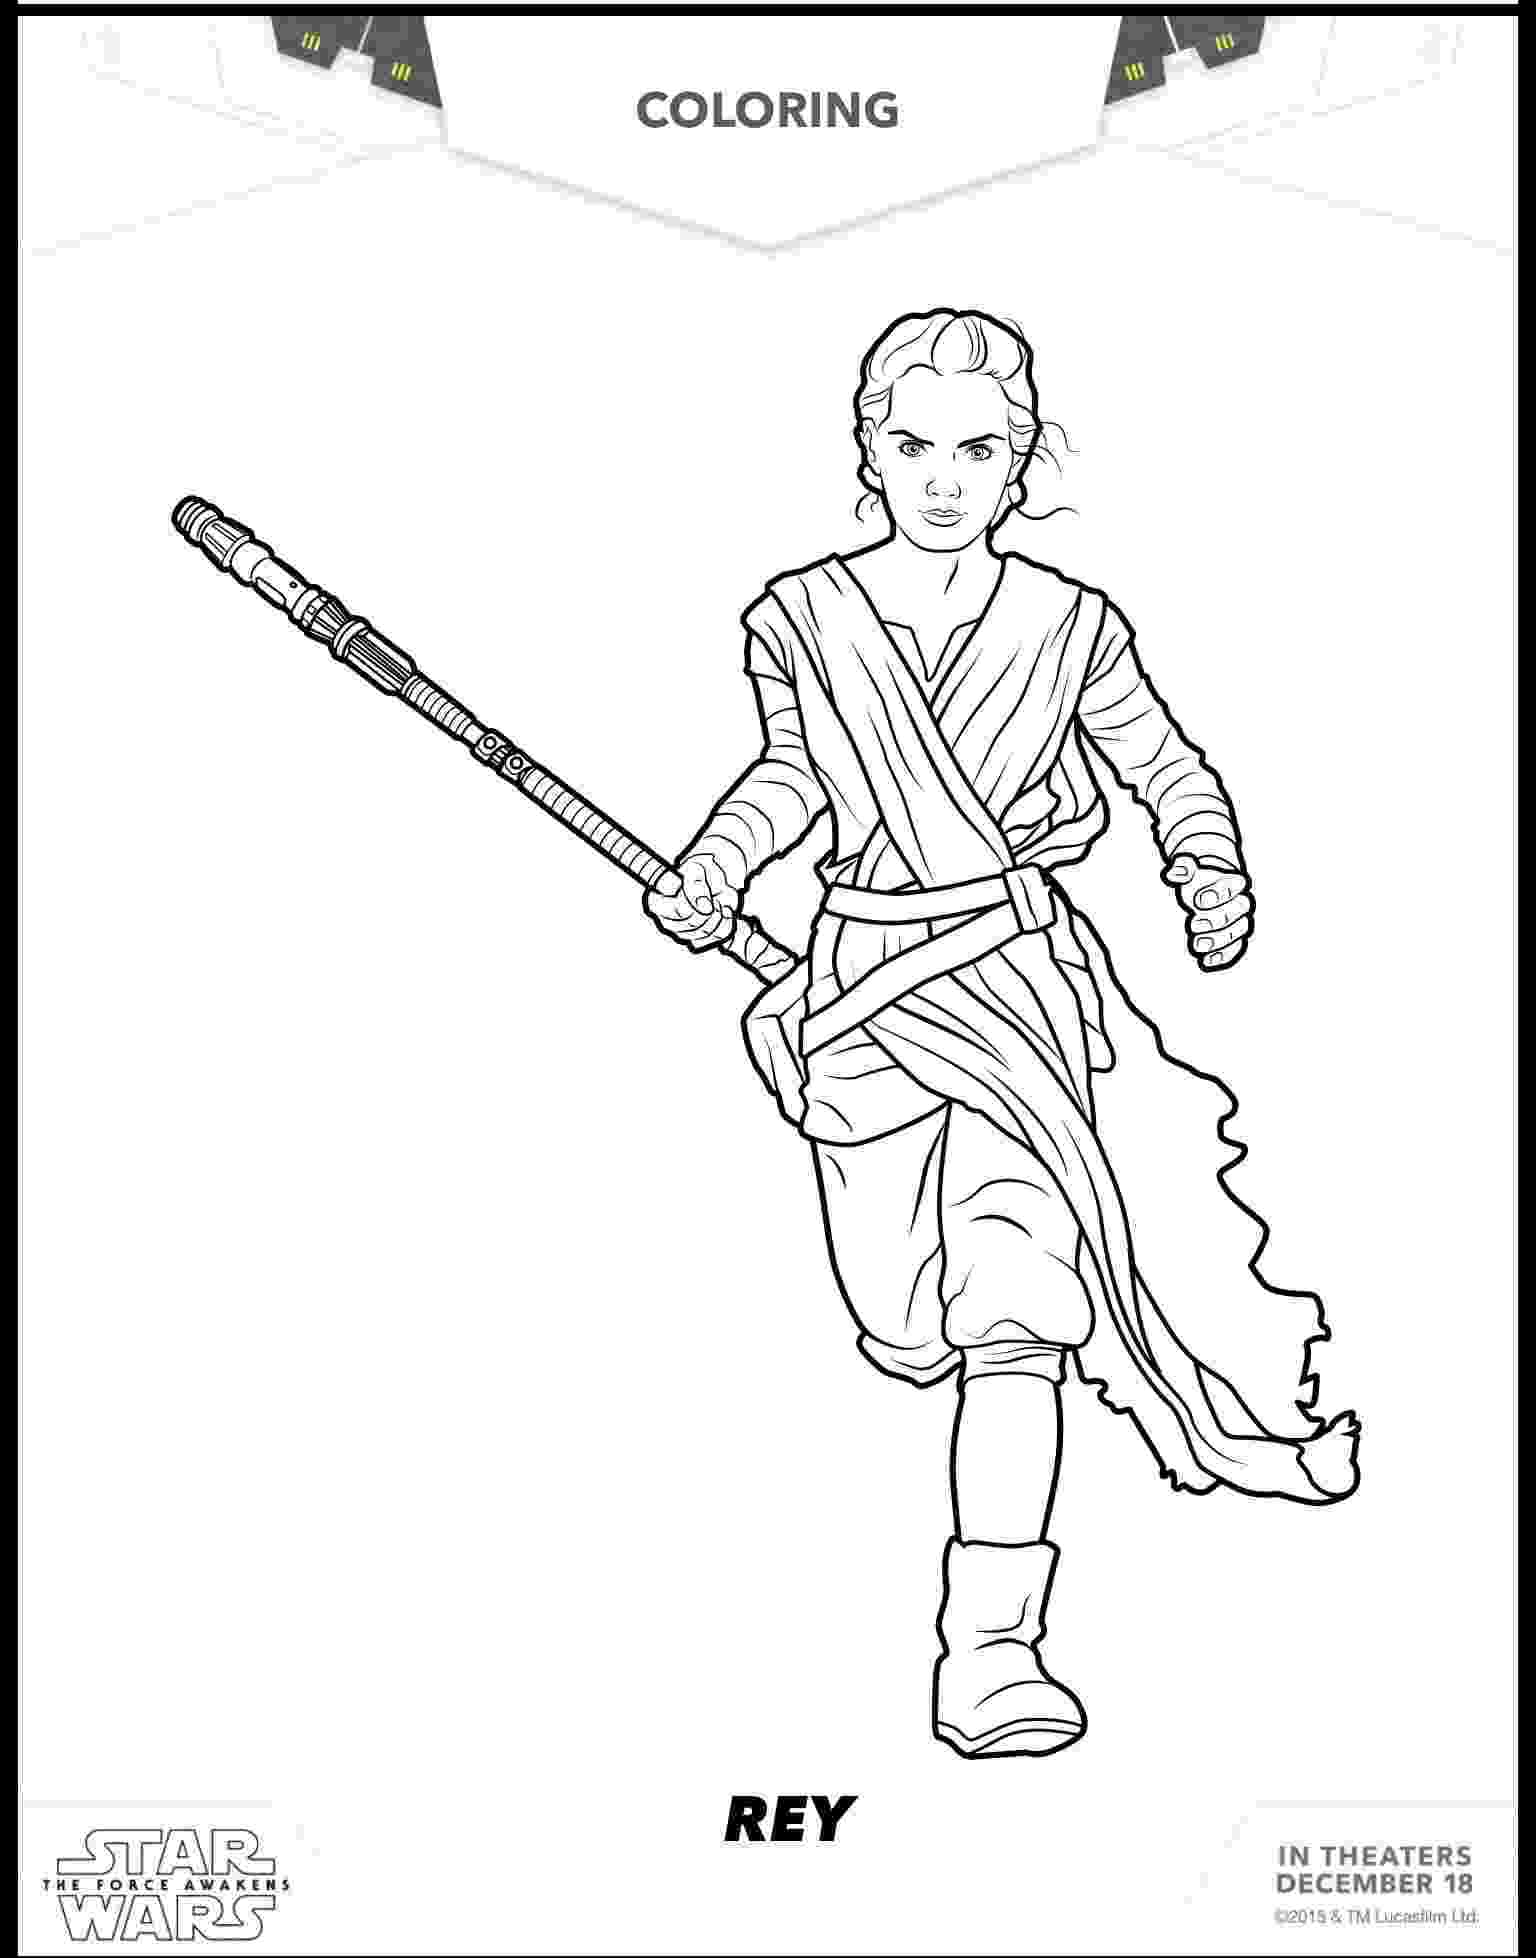 starwars colouring coloring pages star wars page 2 printable coloring starwars colouring